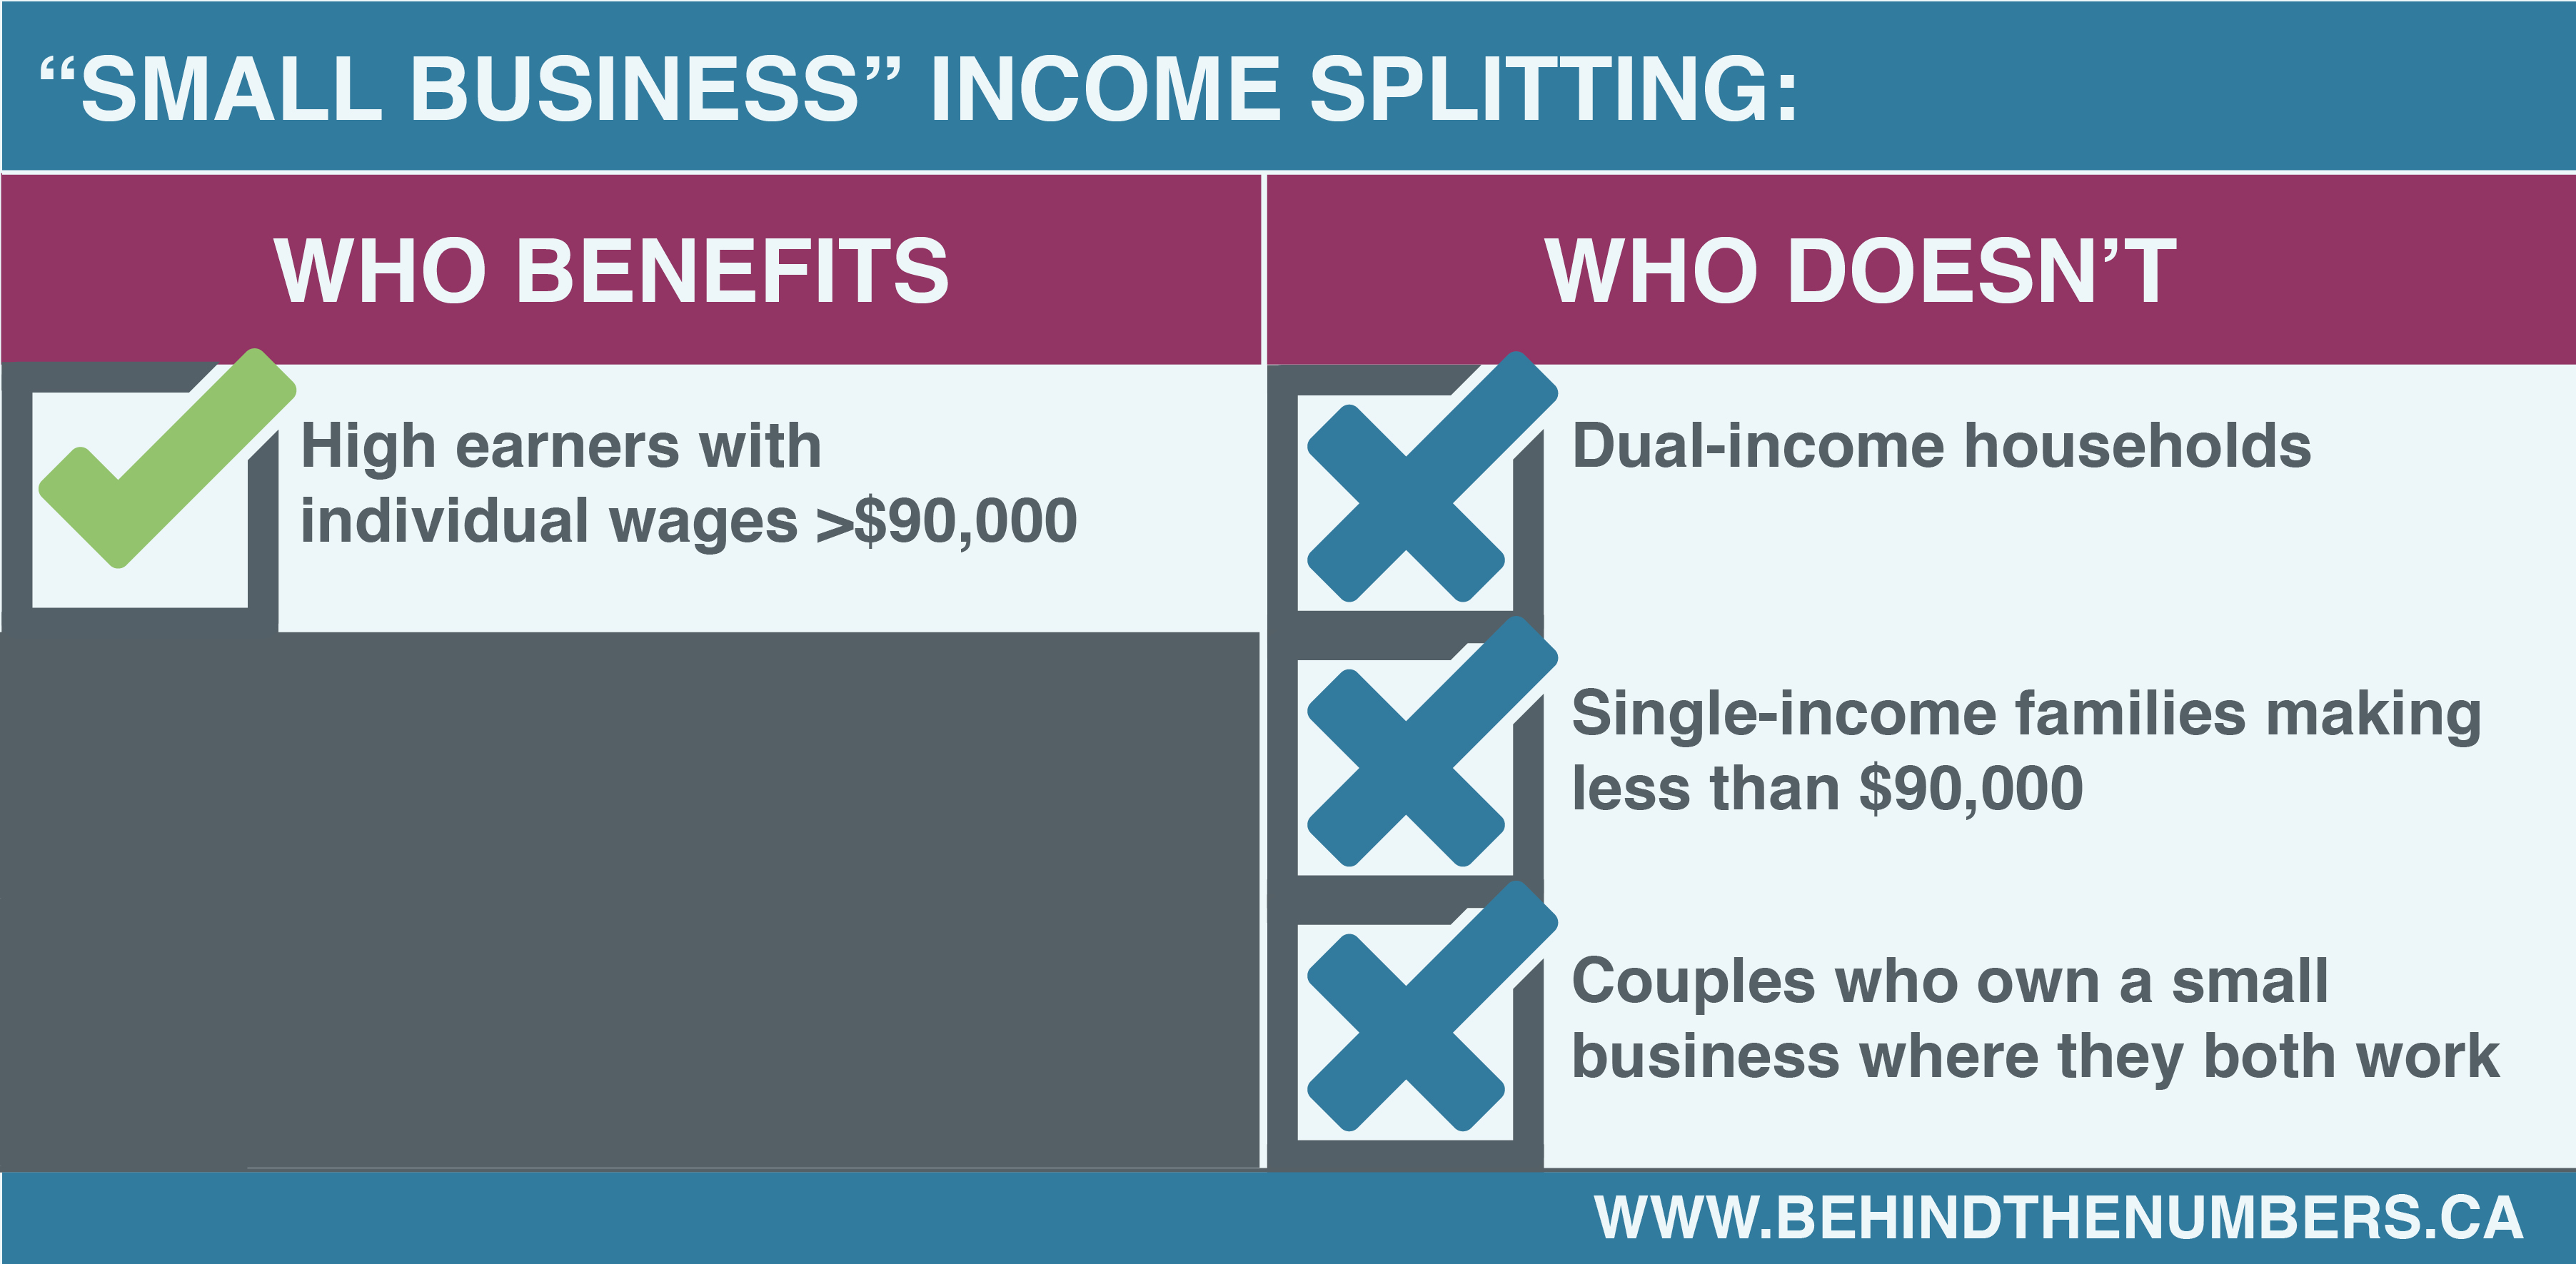 breakdown of who benefits from small business income splitting